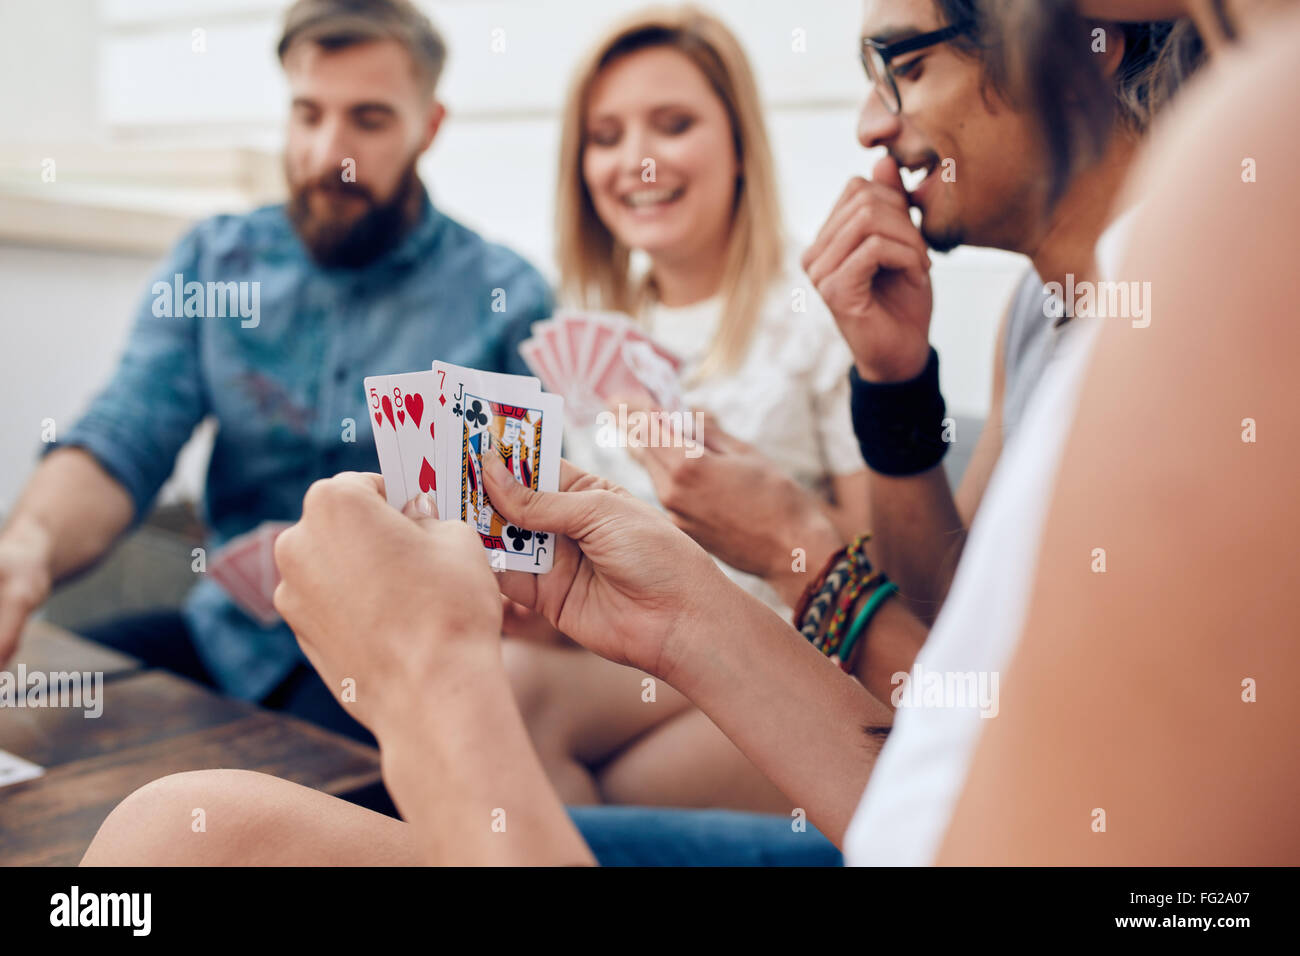 Group of friends sitting together playing cards. Focus on playing cards in hands of a woman during a party. - Stock Image